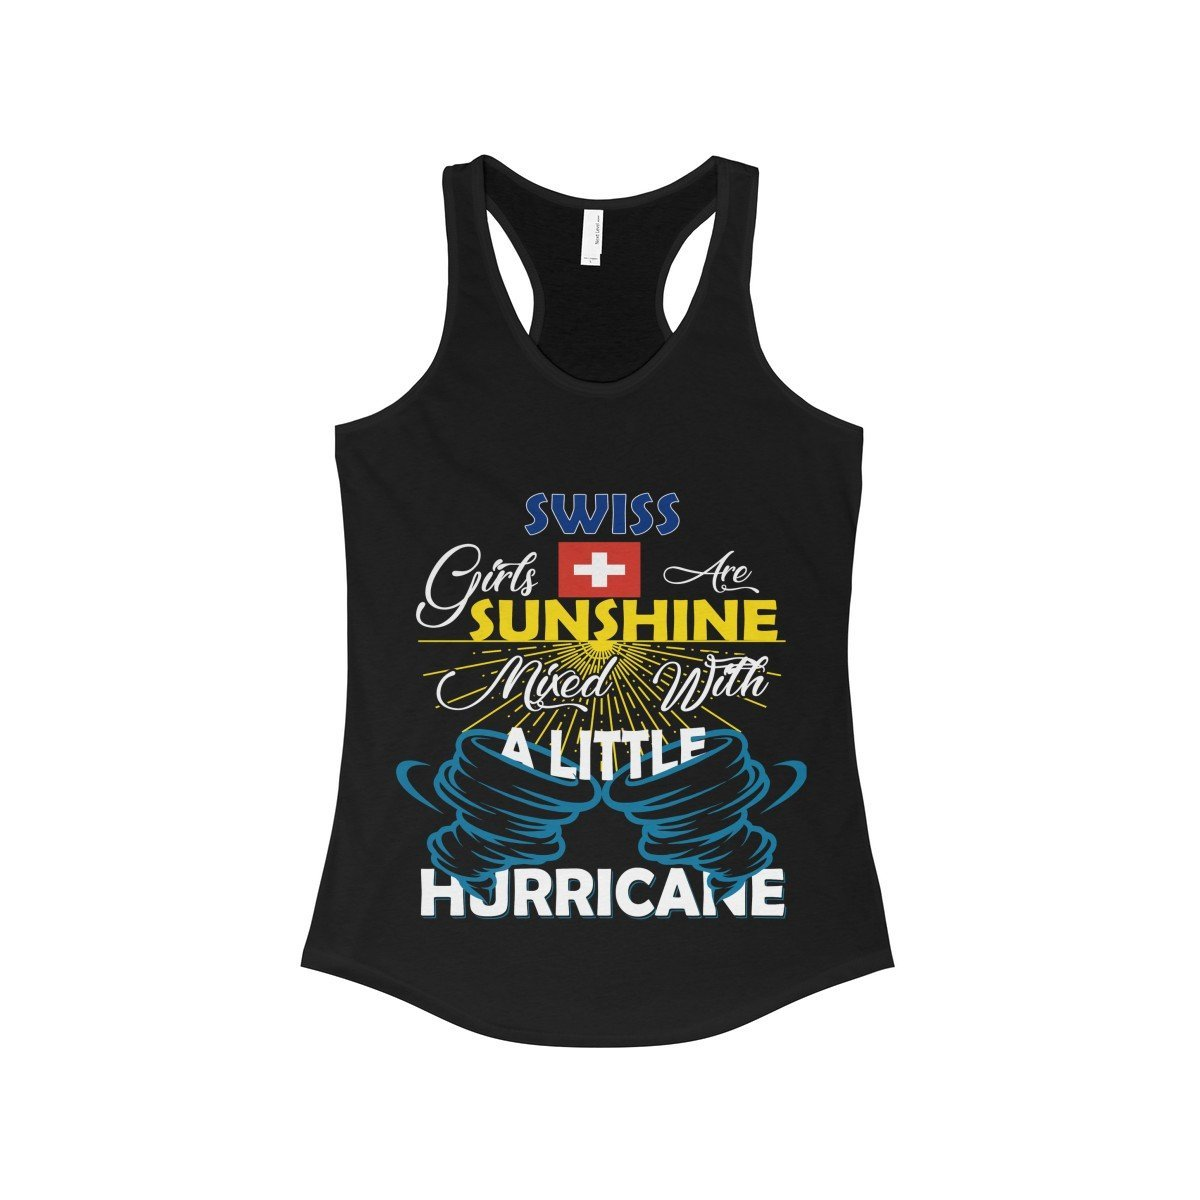 FavoryStore Swiss Girls Are Sunshine Mixed With a Little Hurricane Shirt Tank Top